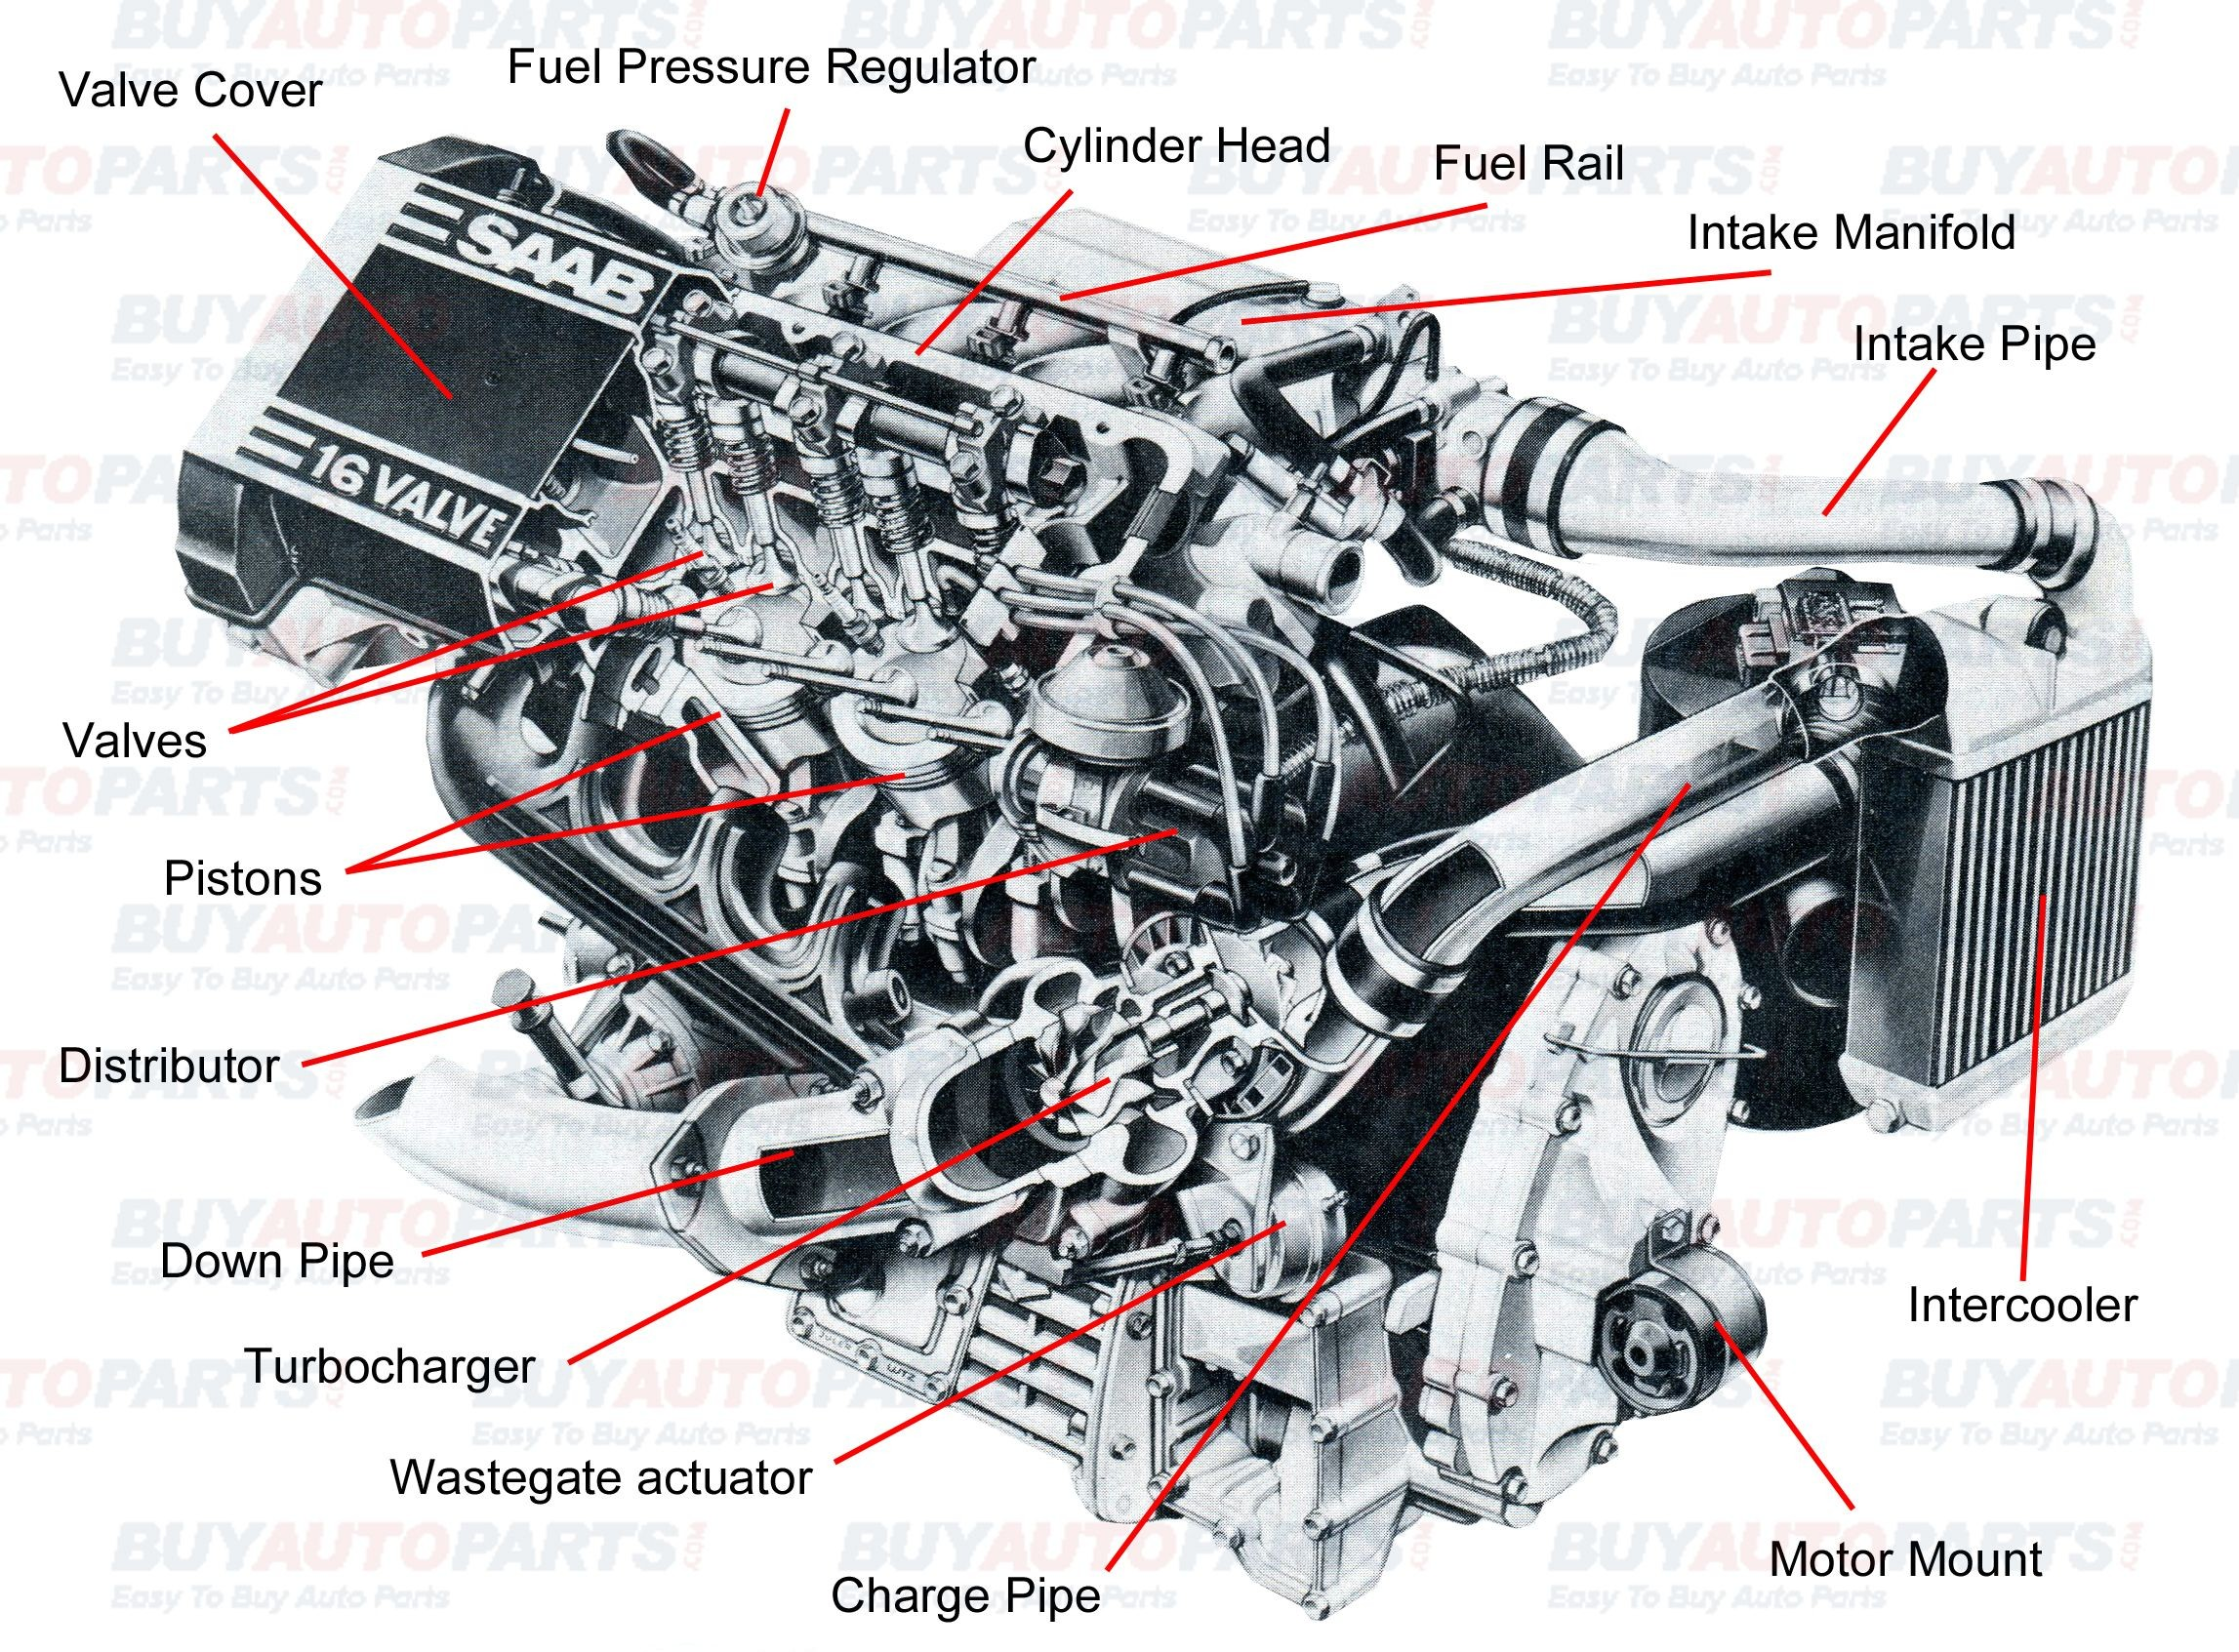 Names Of Car Parts Diagram All Internal Bustion Engines Have the Same Basic Ponents the Of Names Of Car Parts Diagram